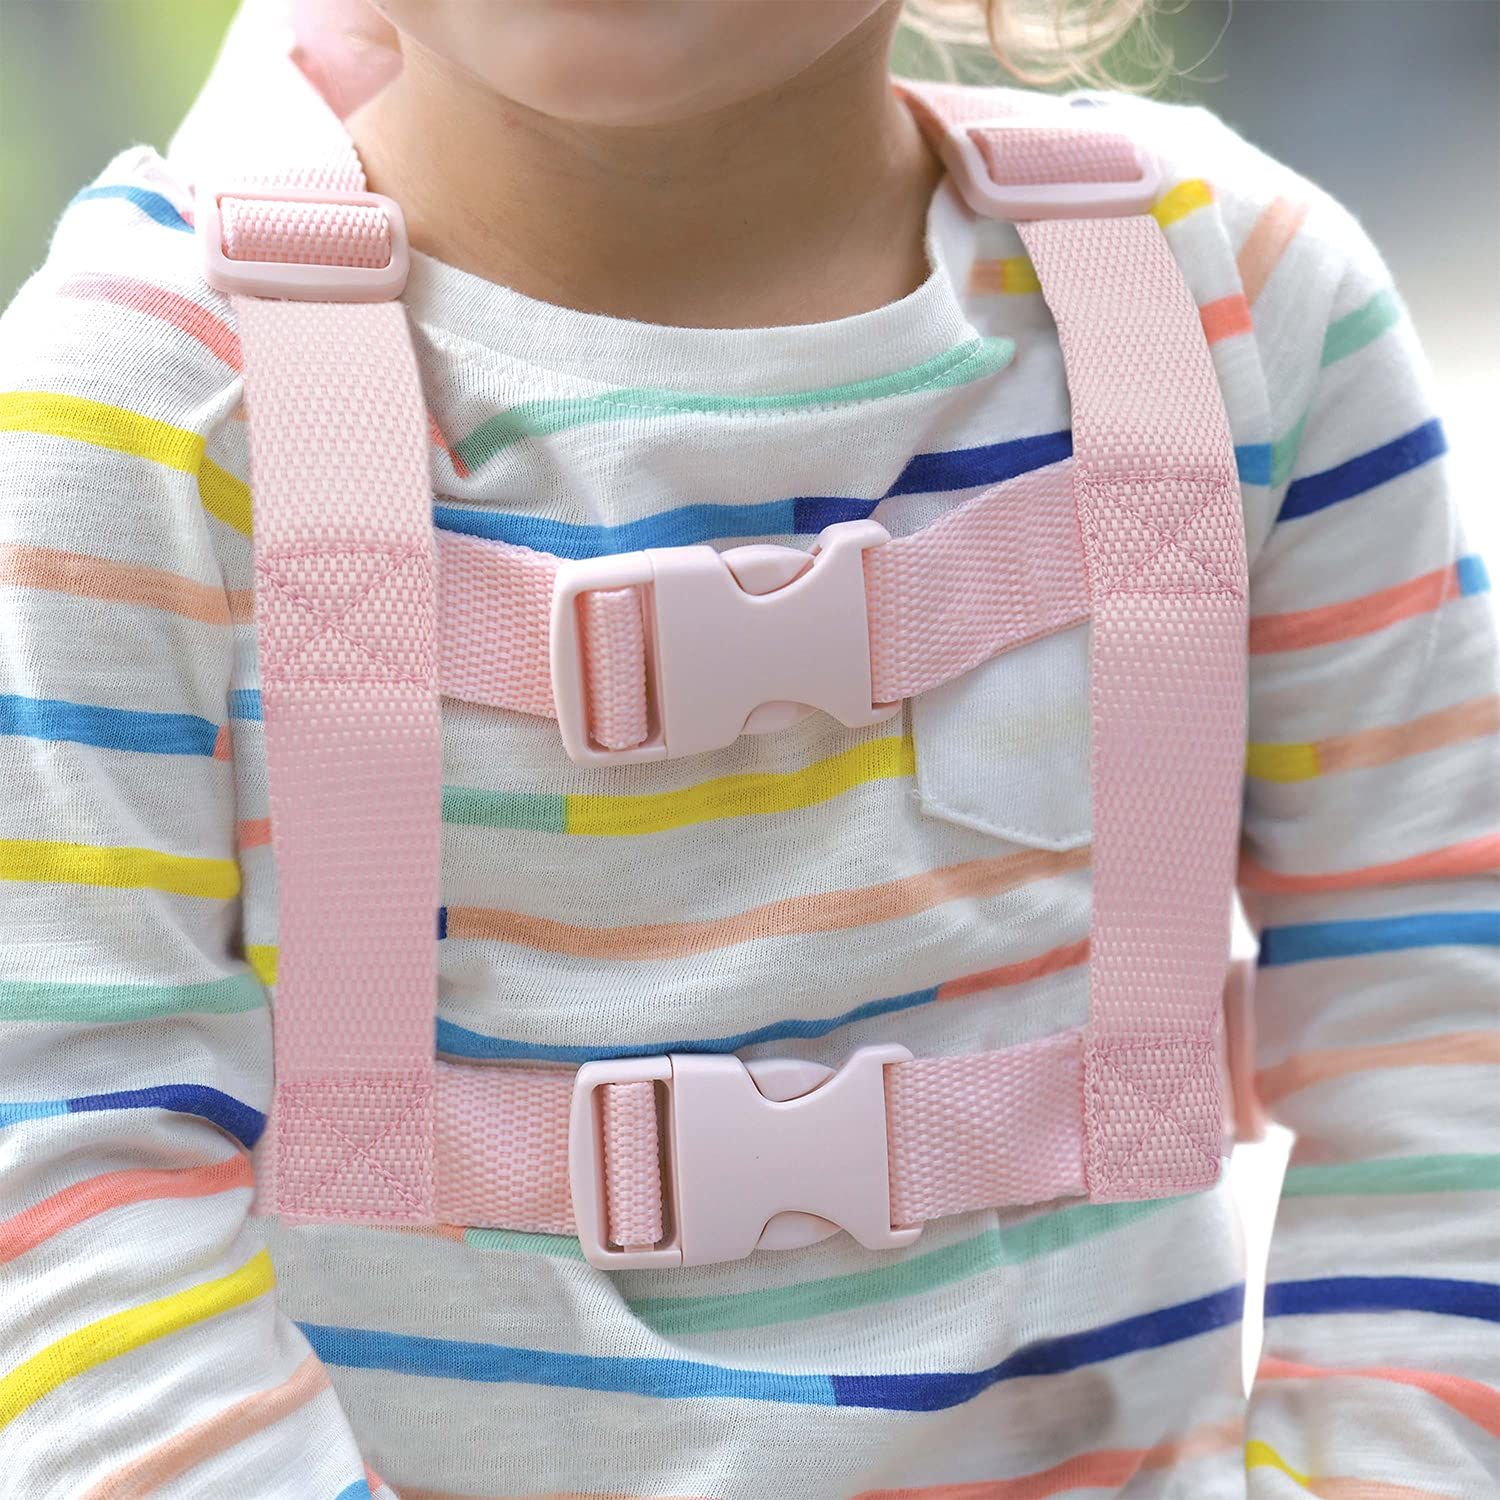 Travel Bug Toddler Character 2-in-1 Safety Harness - Pig